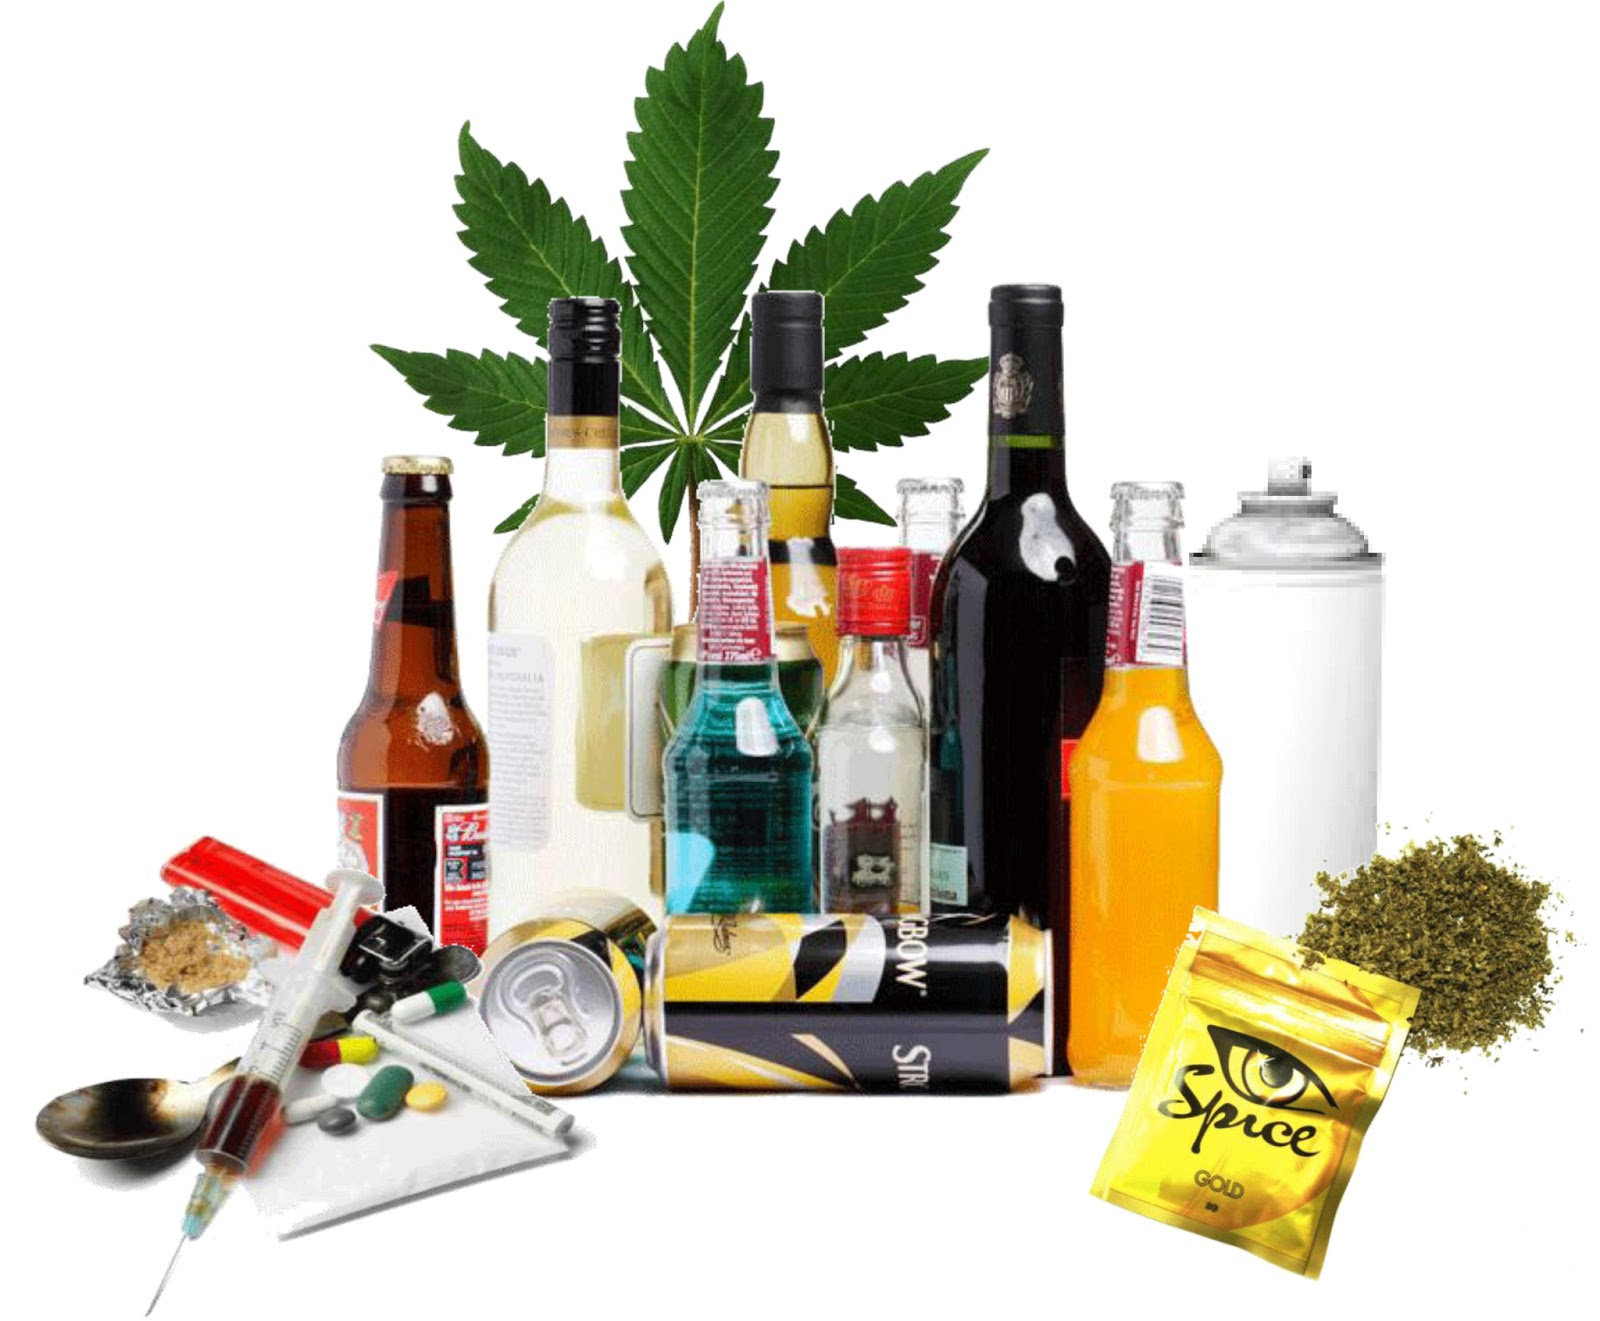 drug and alcohol abuse in high schools and the controversies surrounding drug and alcohol tests amon